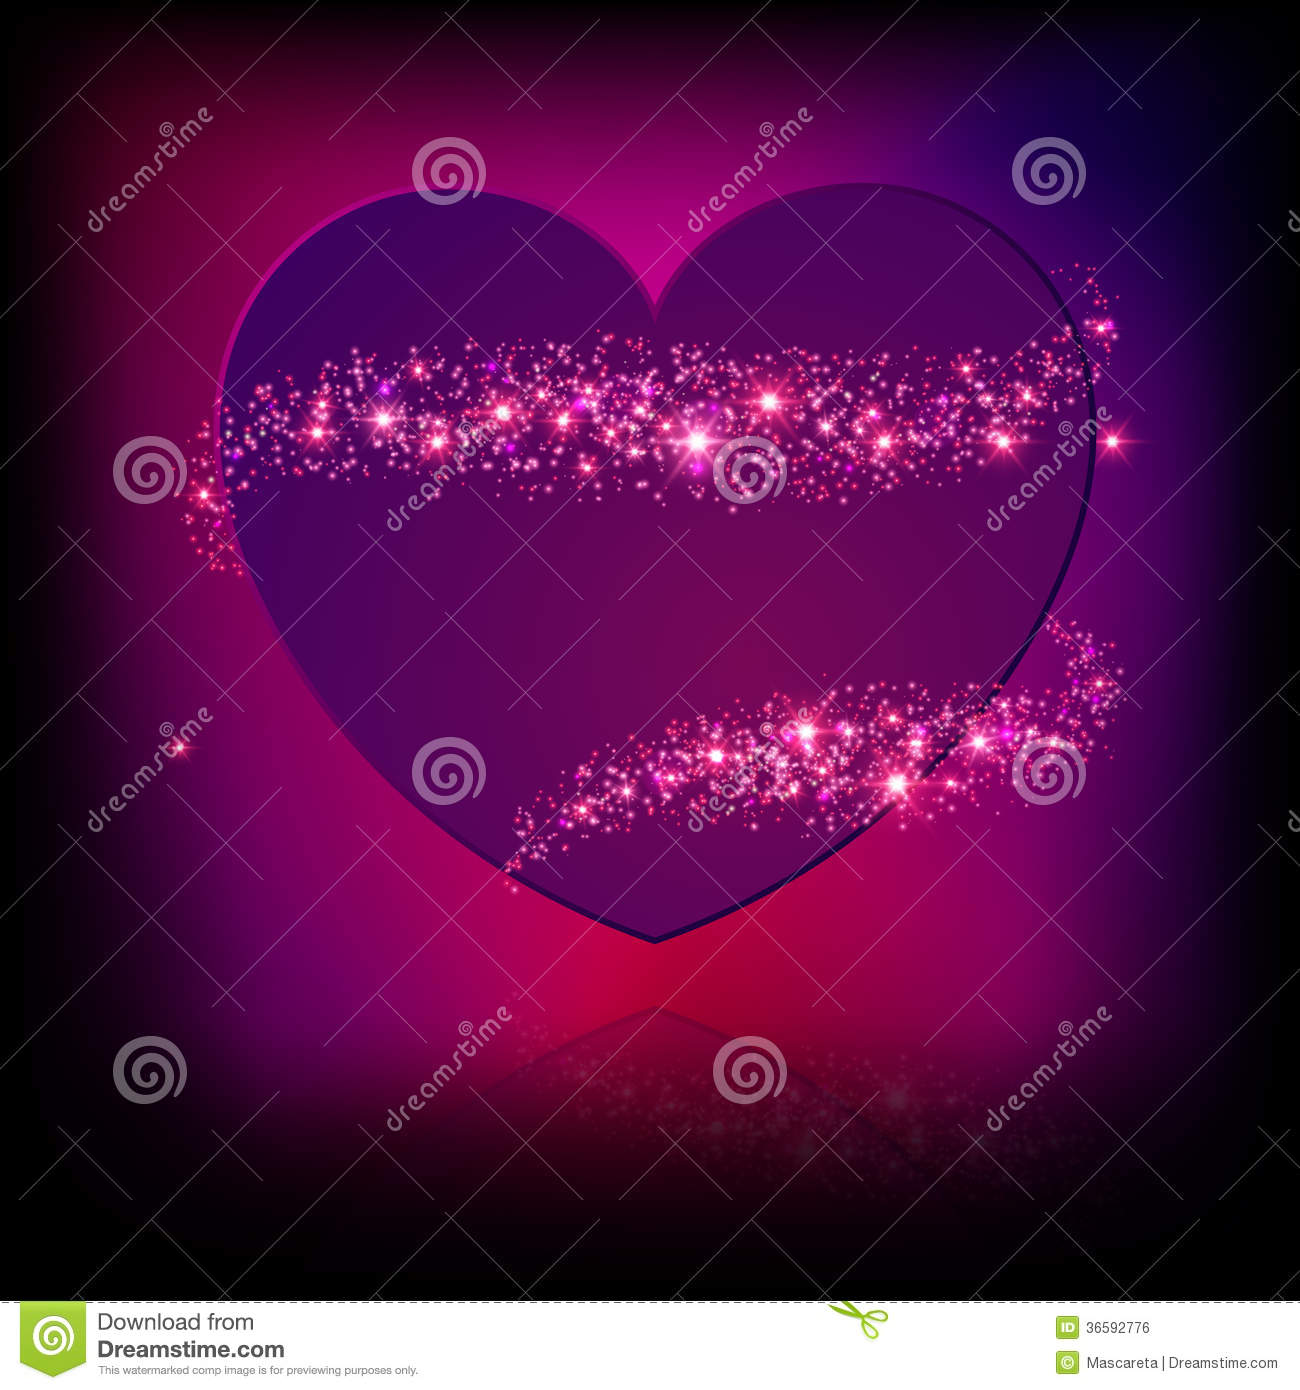 Sparkle Bright Pink Heart Royalty Free Stock Image